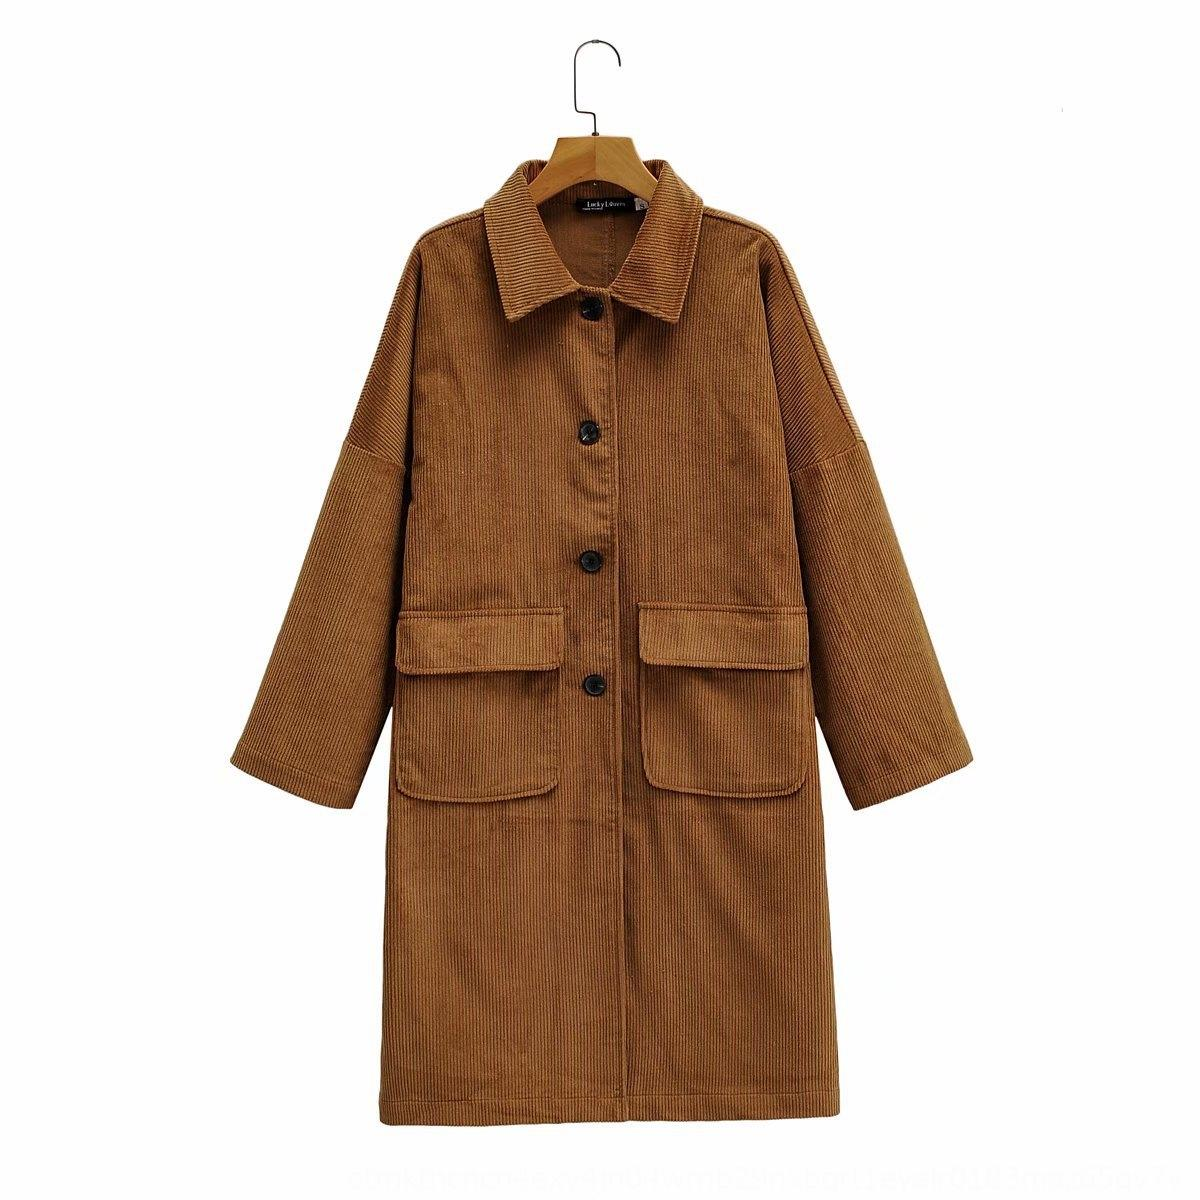 87LB-808 women's clothing 2020 Autumn and Winter new casual double-pocket tooling type core flannel Coat coatlong coat b61K1